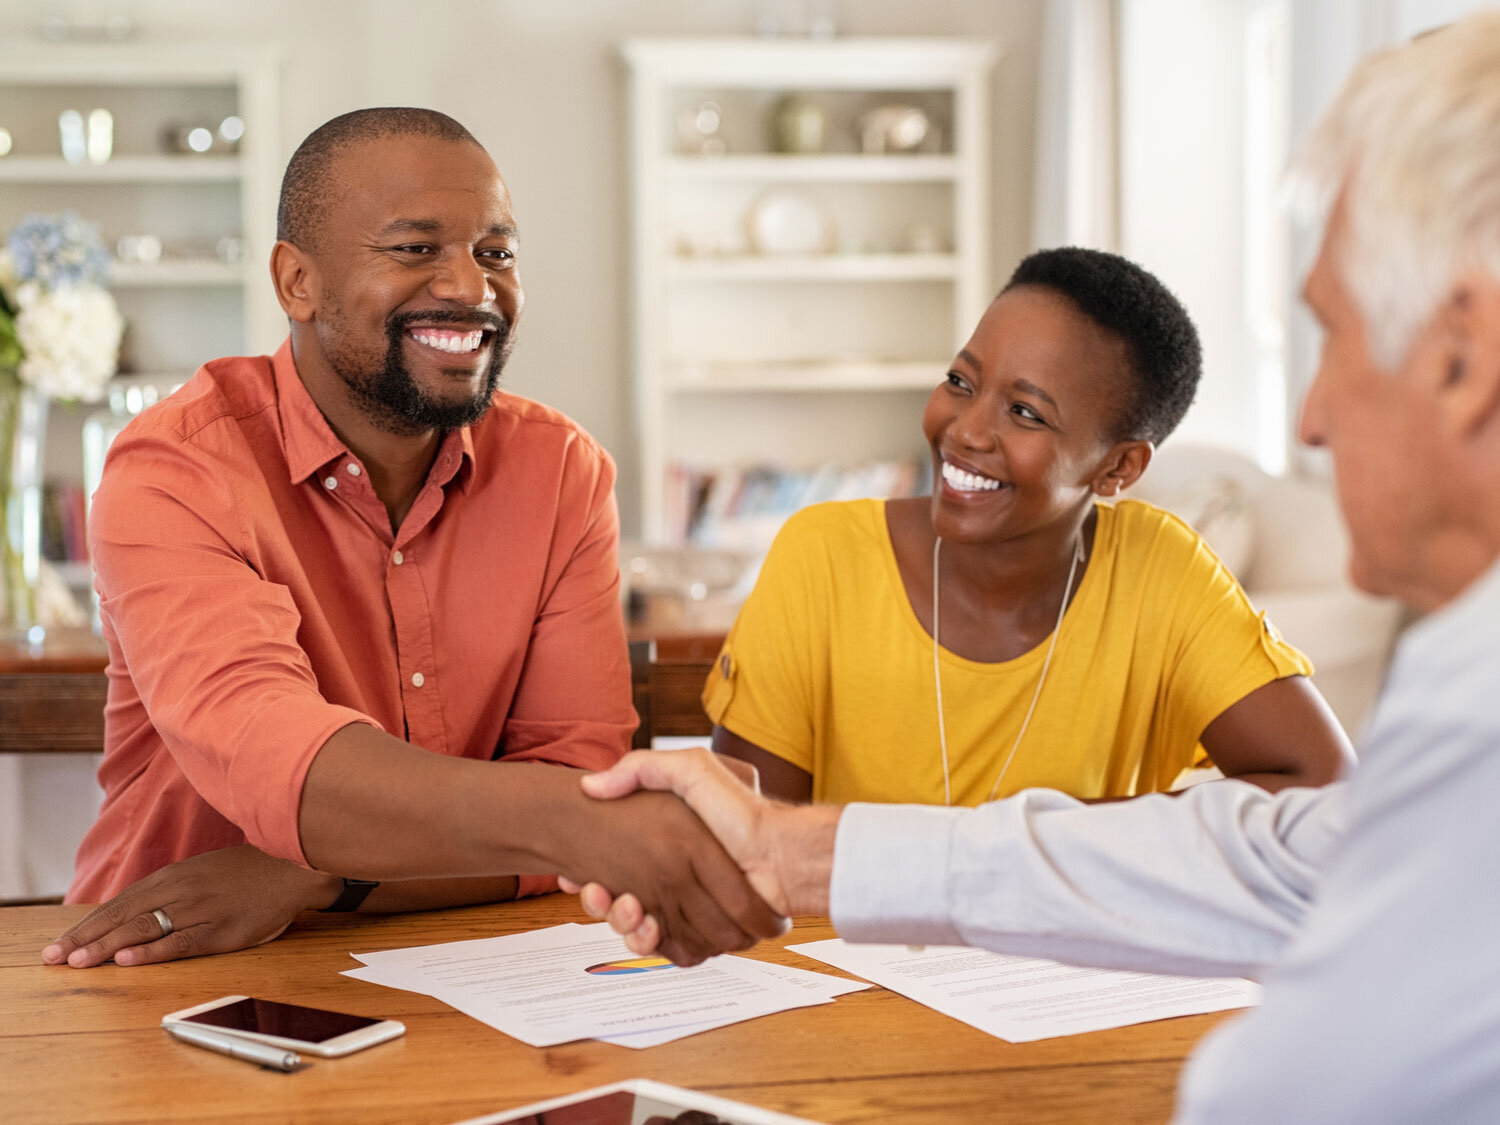 When is it the right time to take a long-term loan over a short-term loan? When should you take the high payments of a short-term loan? In this article, we'll answer the biggest question: short-term vs long-term loan - which is right for you?